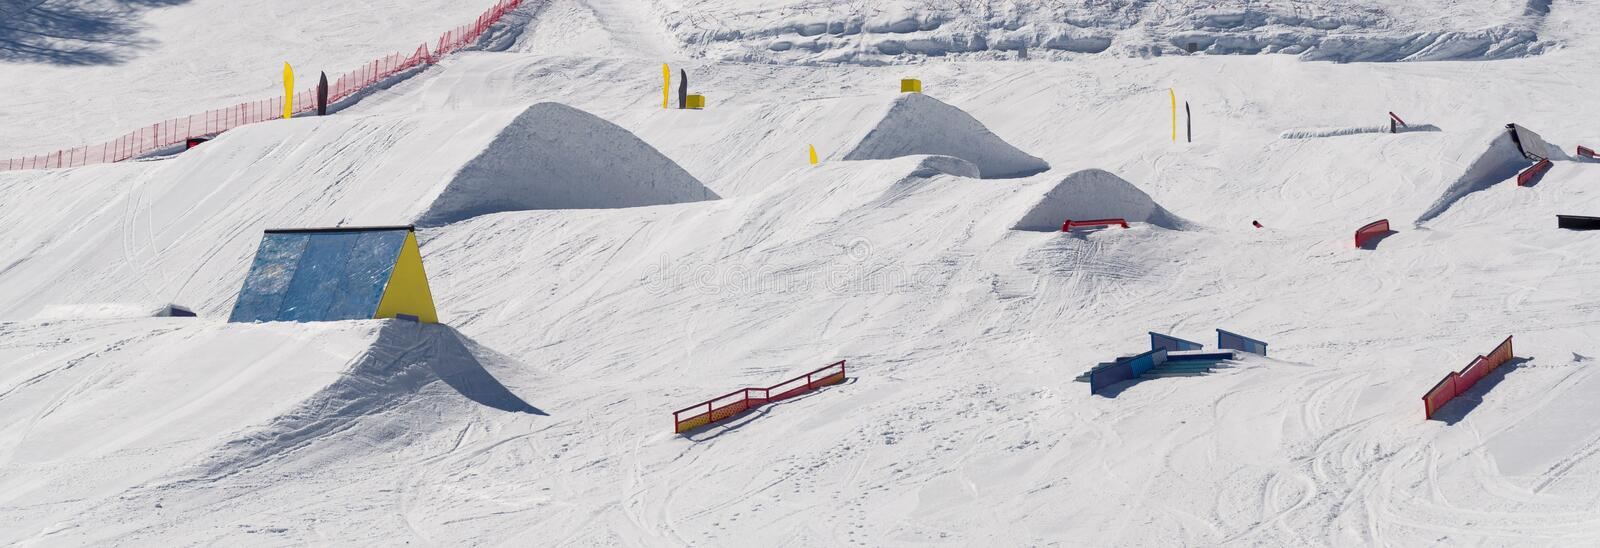 Snowpark with ski ramps, kickers, rails. For big air jumping, jibbing, etc. for freestyle snowboarders and skiers royalty free stock image